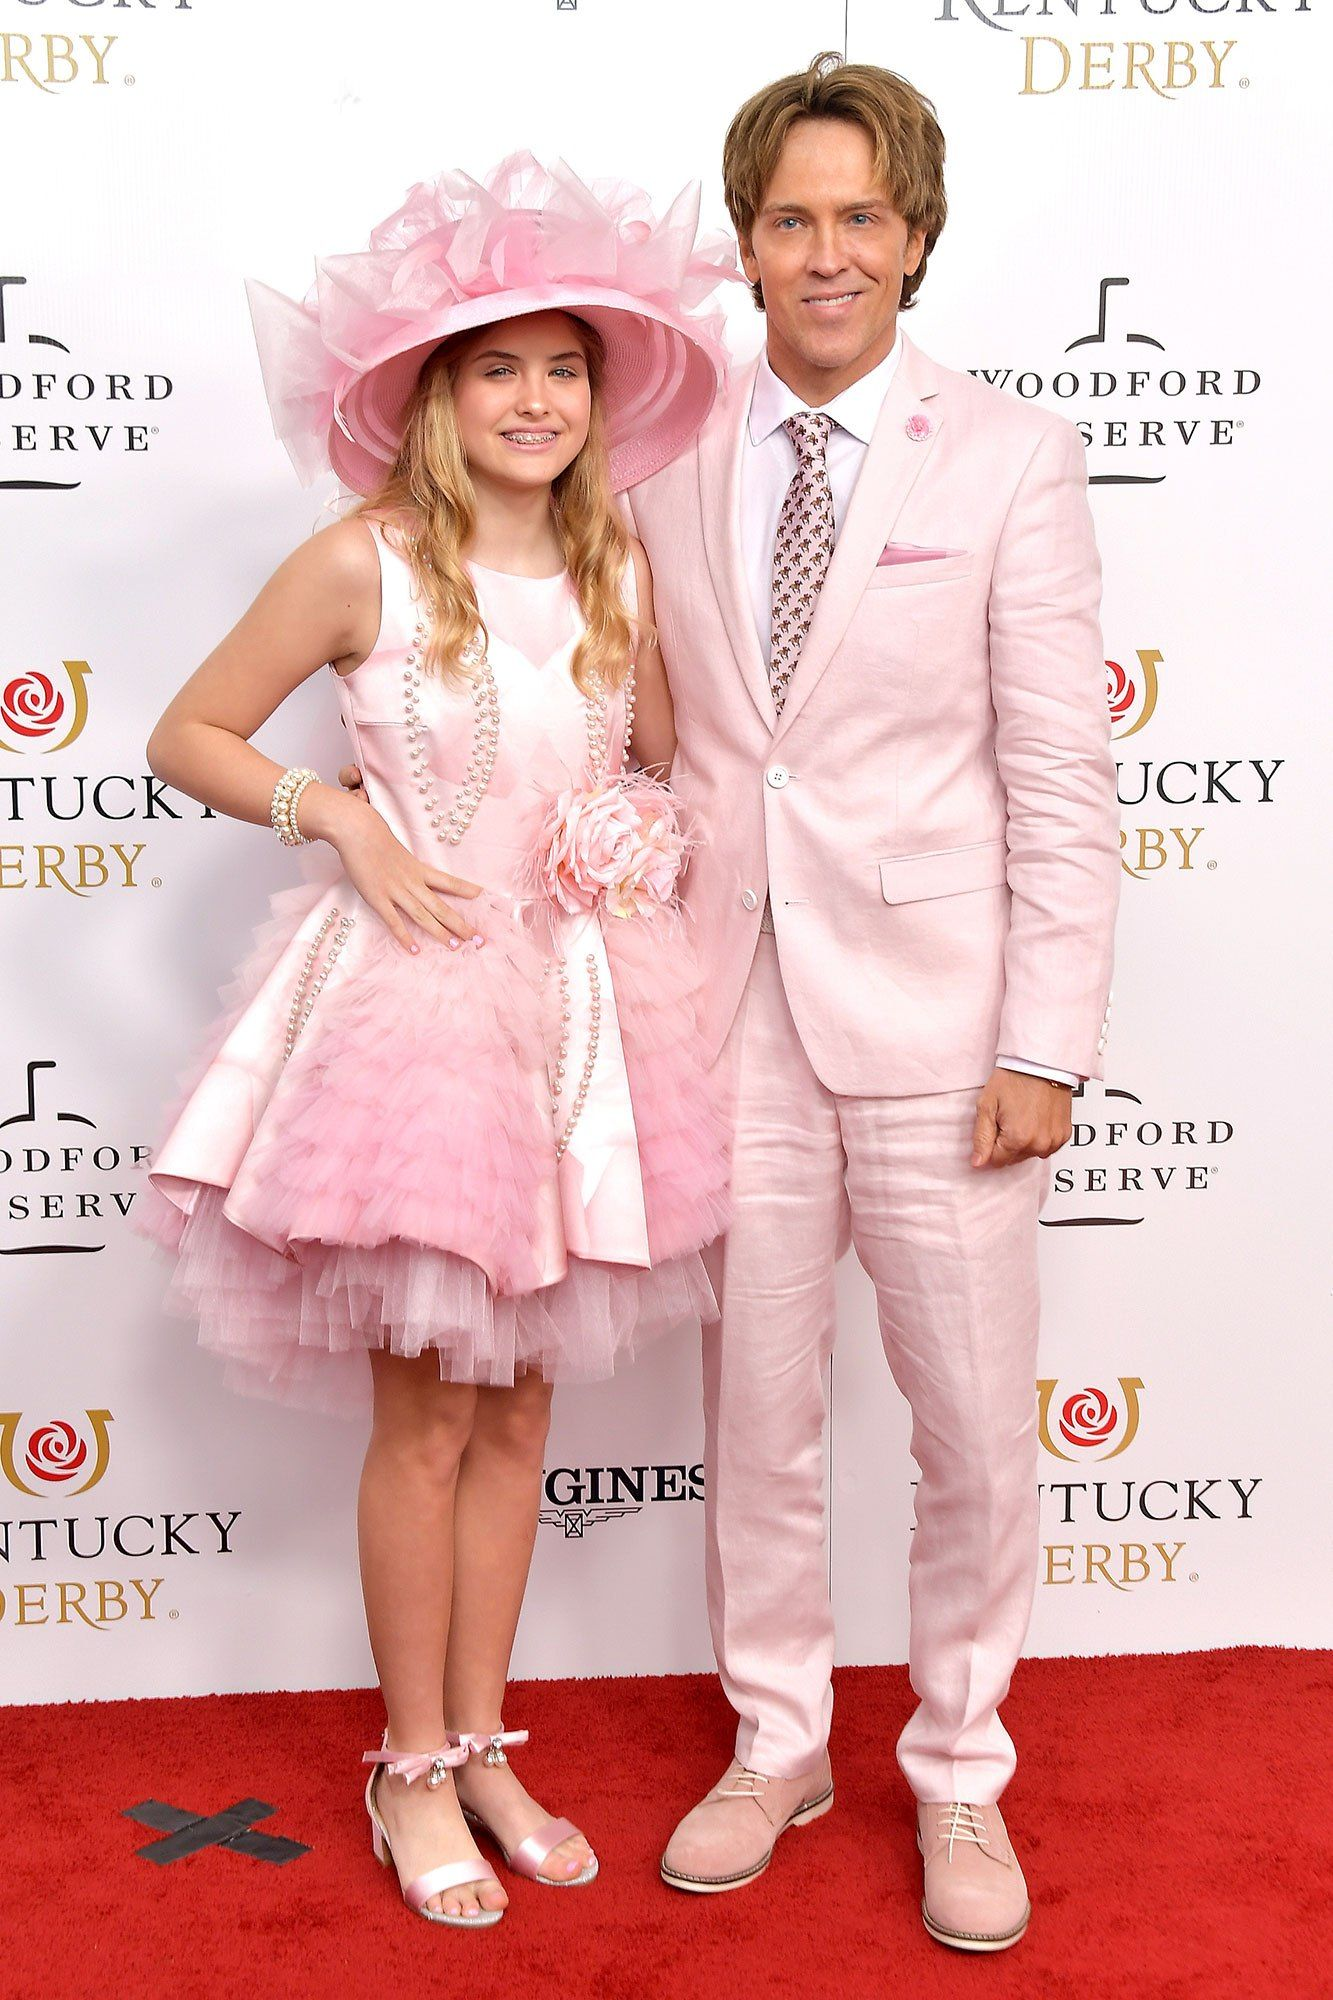 Inside Larry Birkheads Quiet Life with Daughter